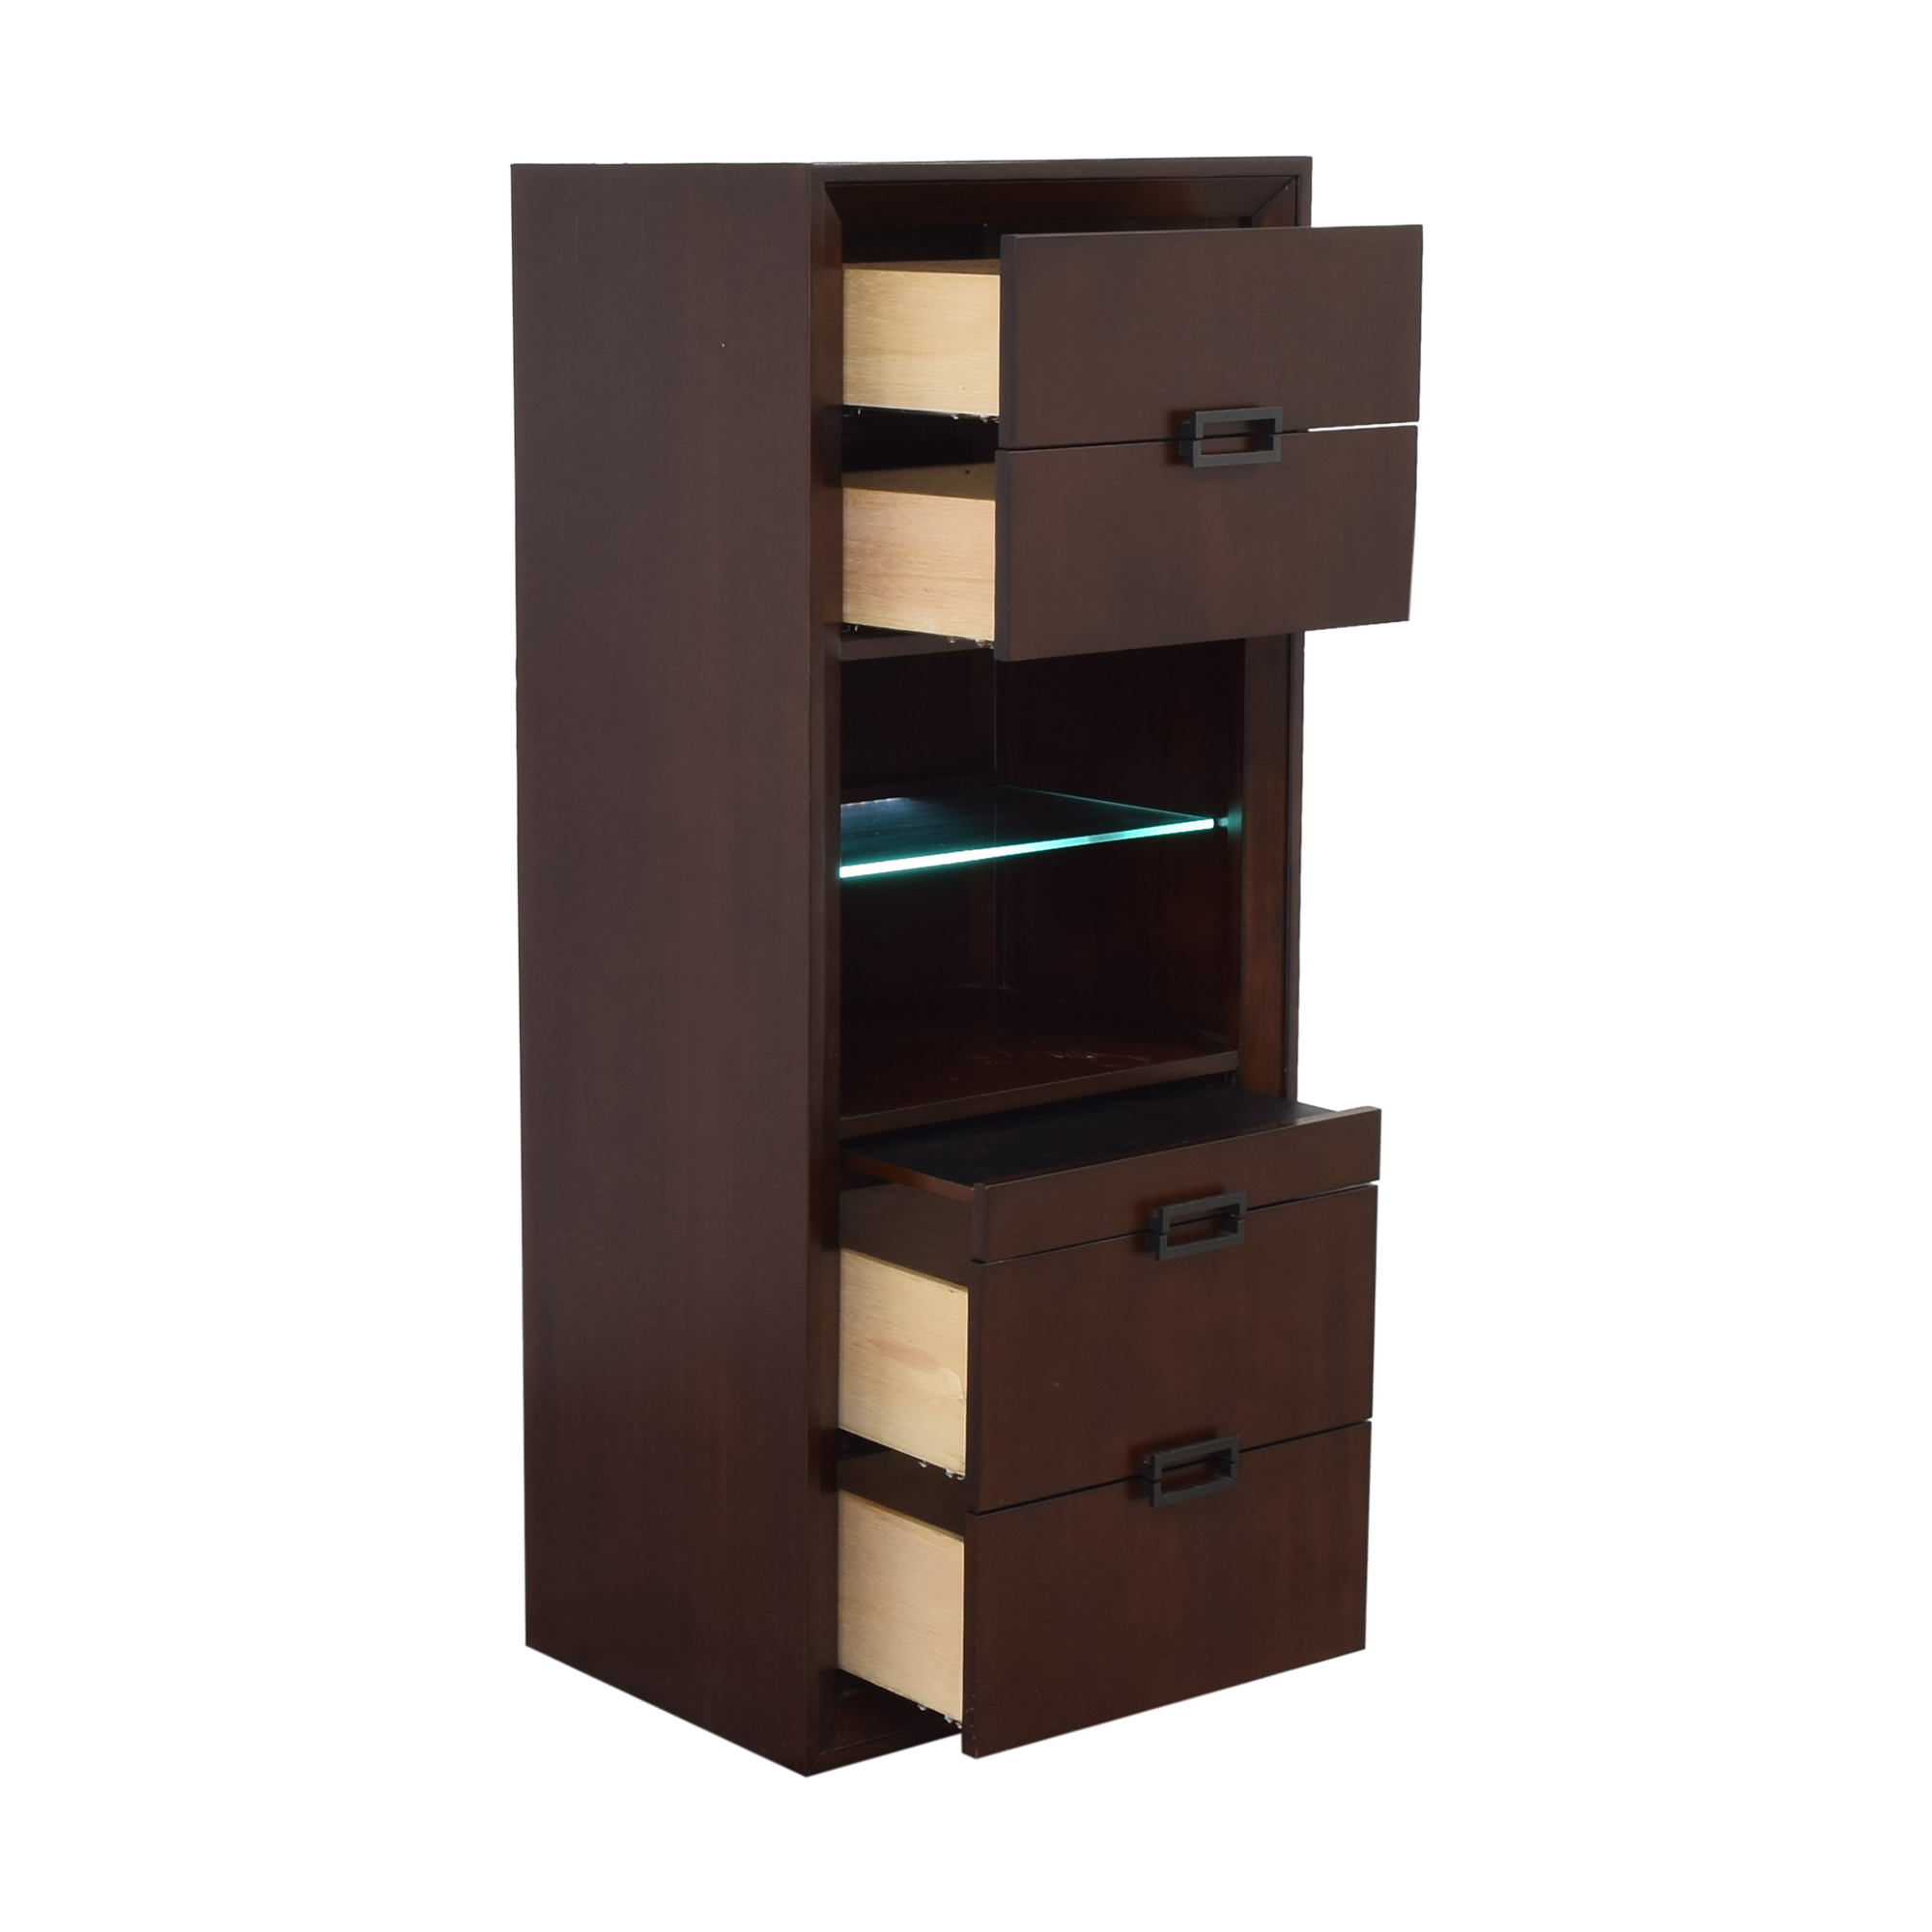 Raymour & Flanigan Raymour & Flanigan Vista Bedside Cabinet second hand